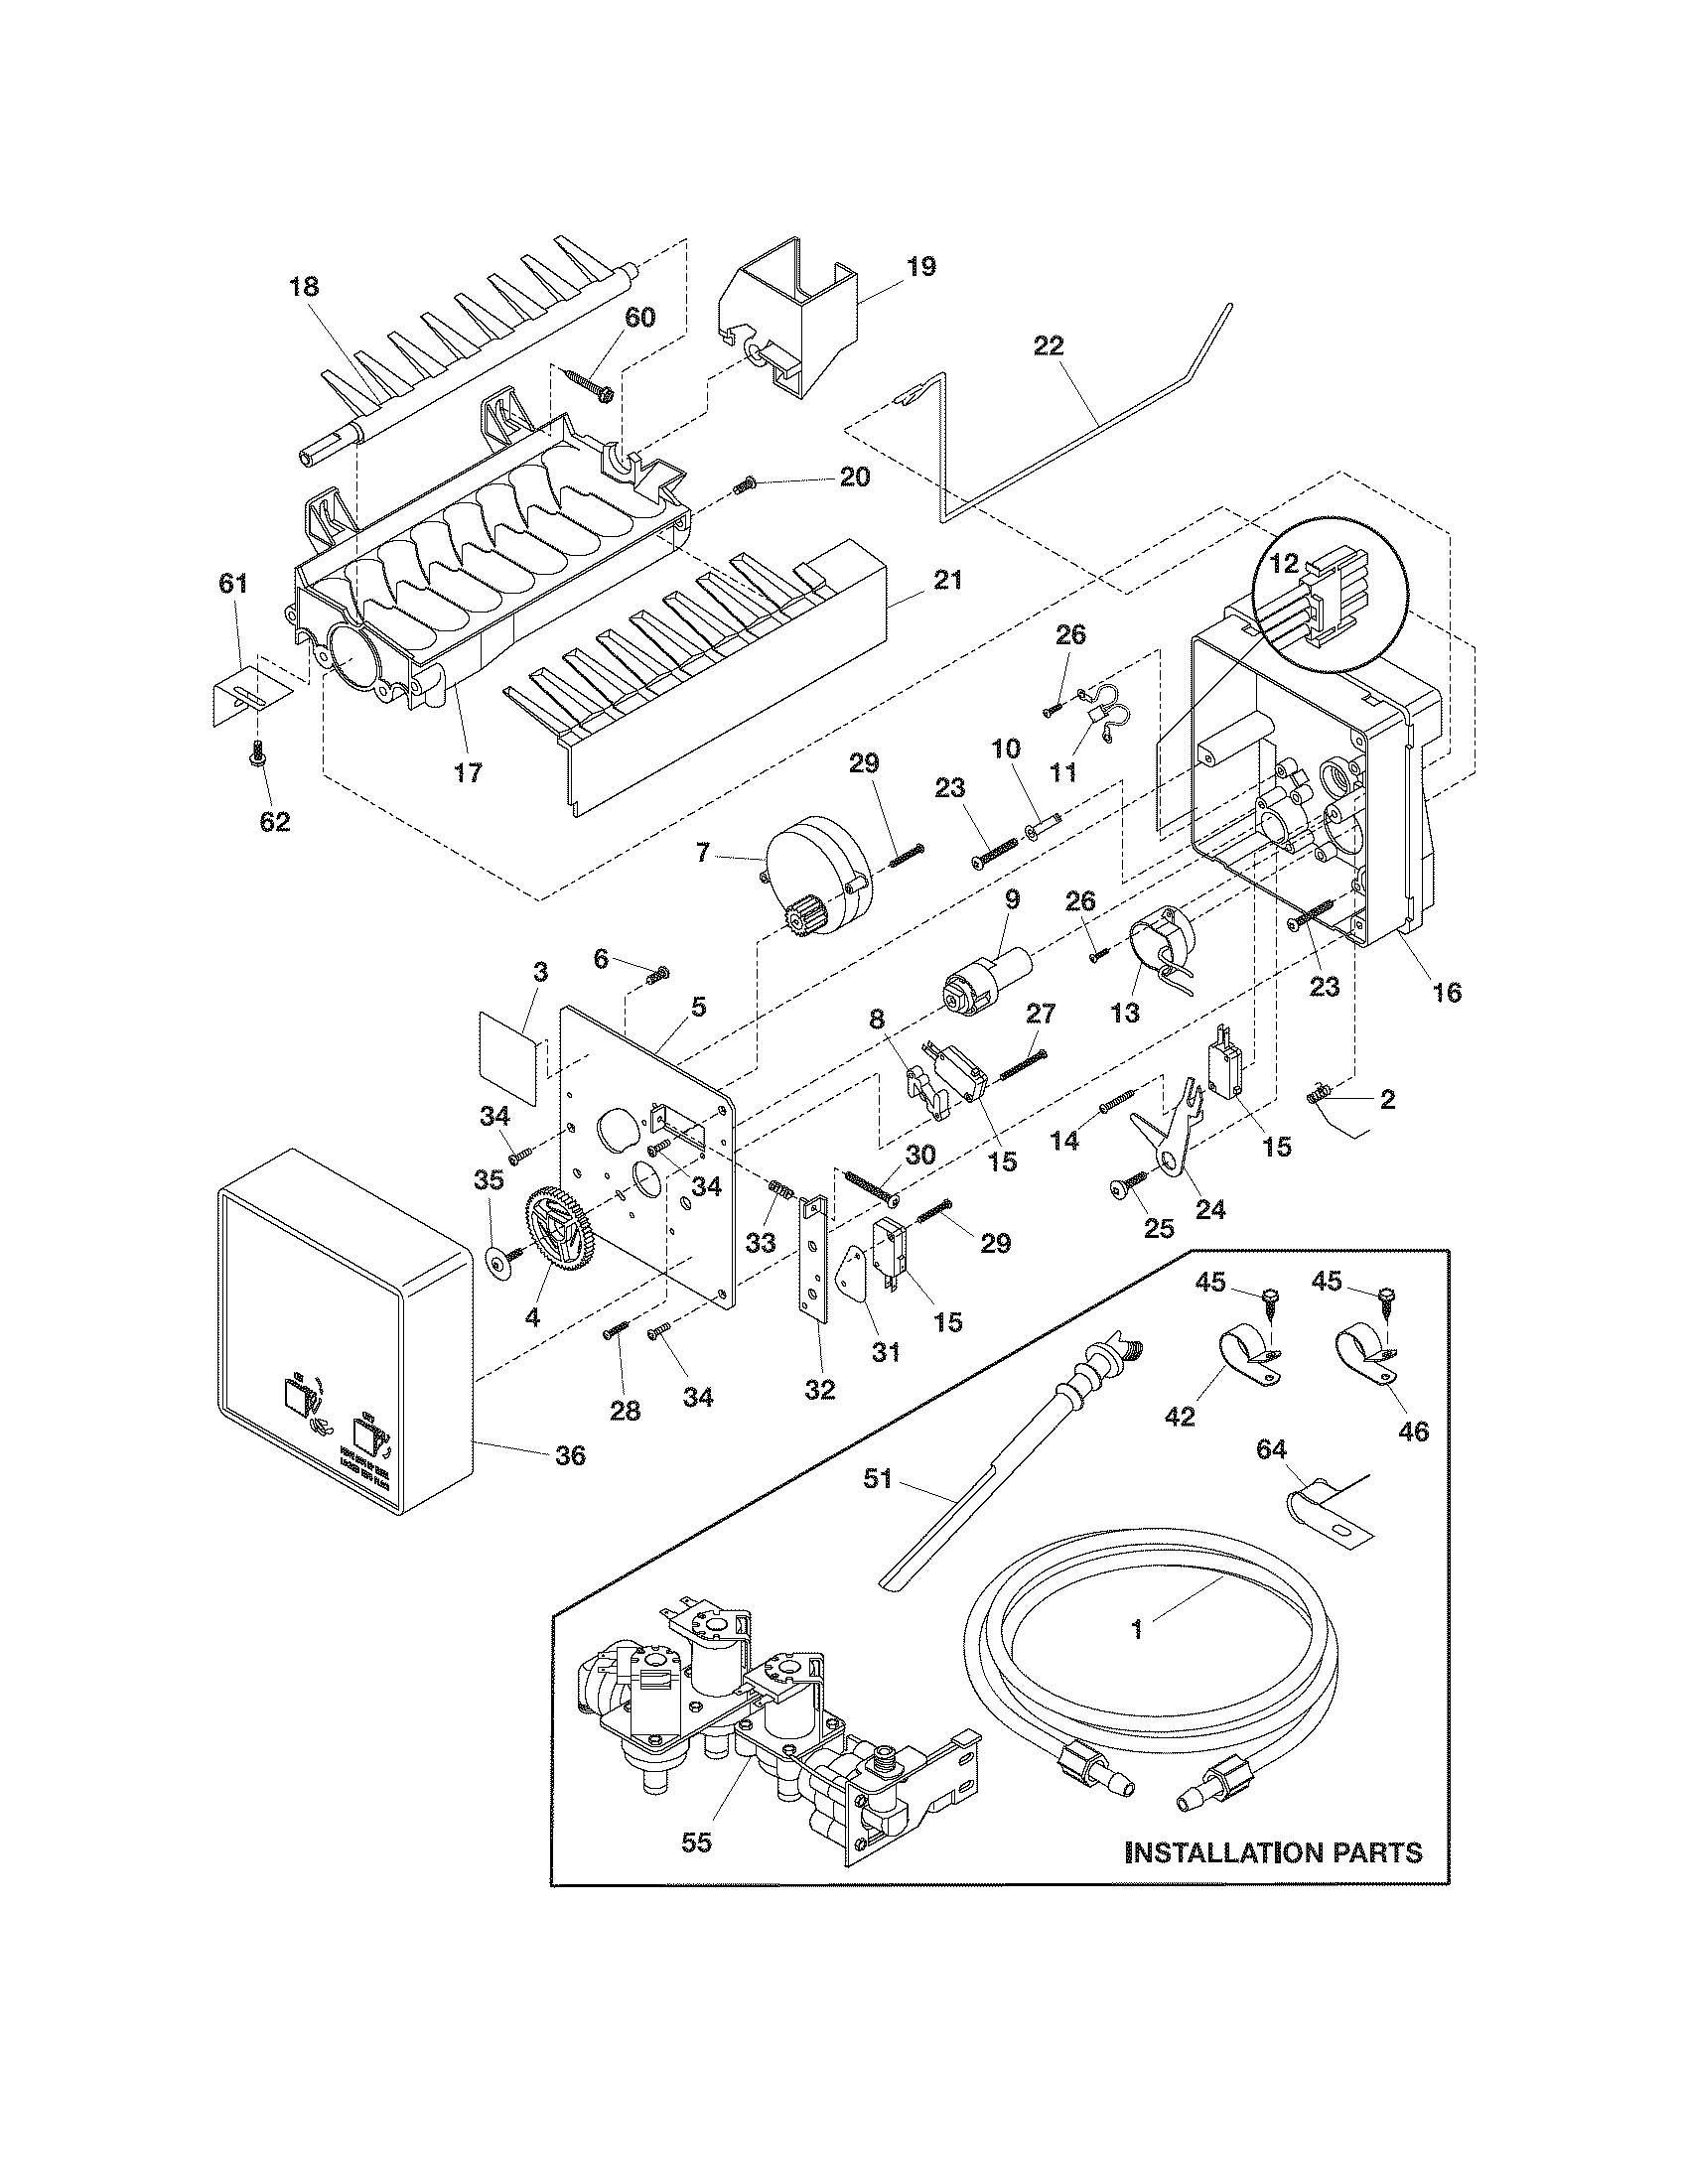 ICE MAKER Diagram & Parts List for Model frs26lf7ds7